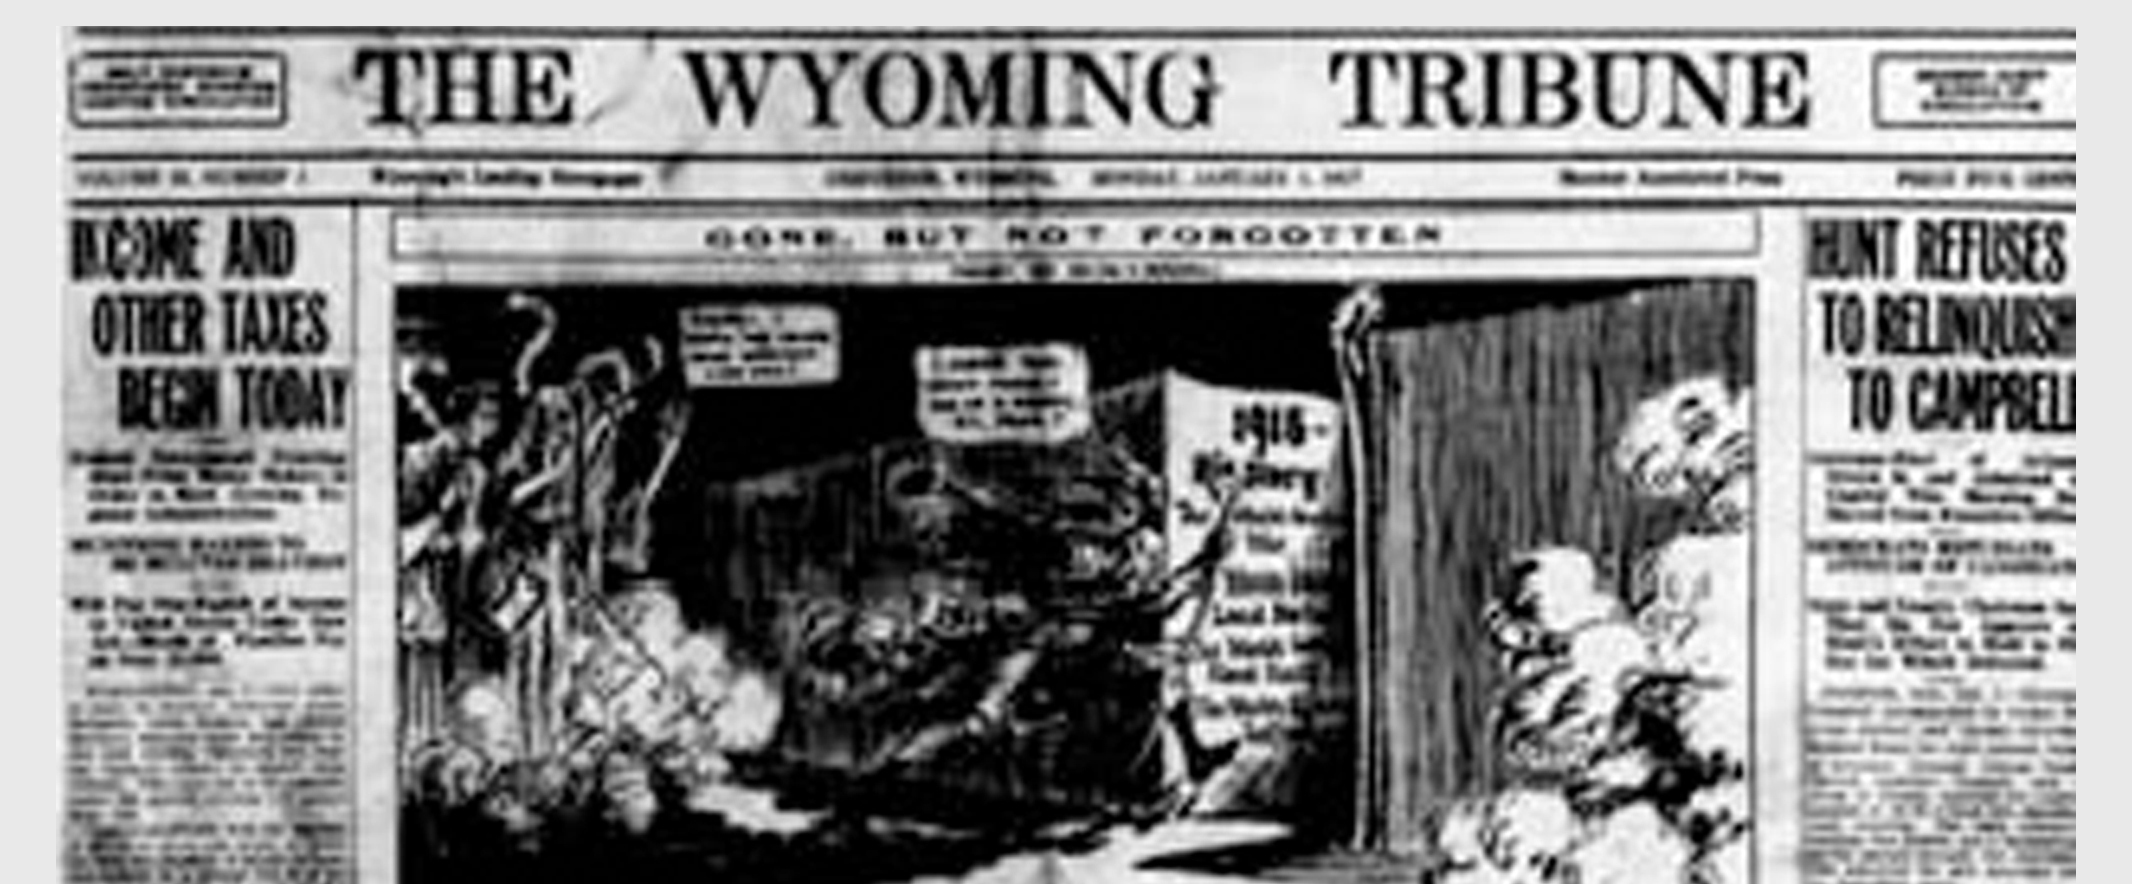 Wyoming State Library, Wyoming Tribune Newspaper Clipping